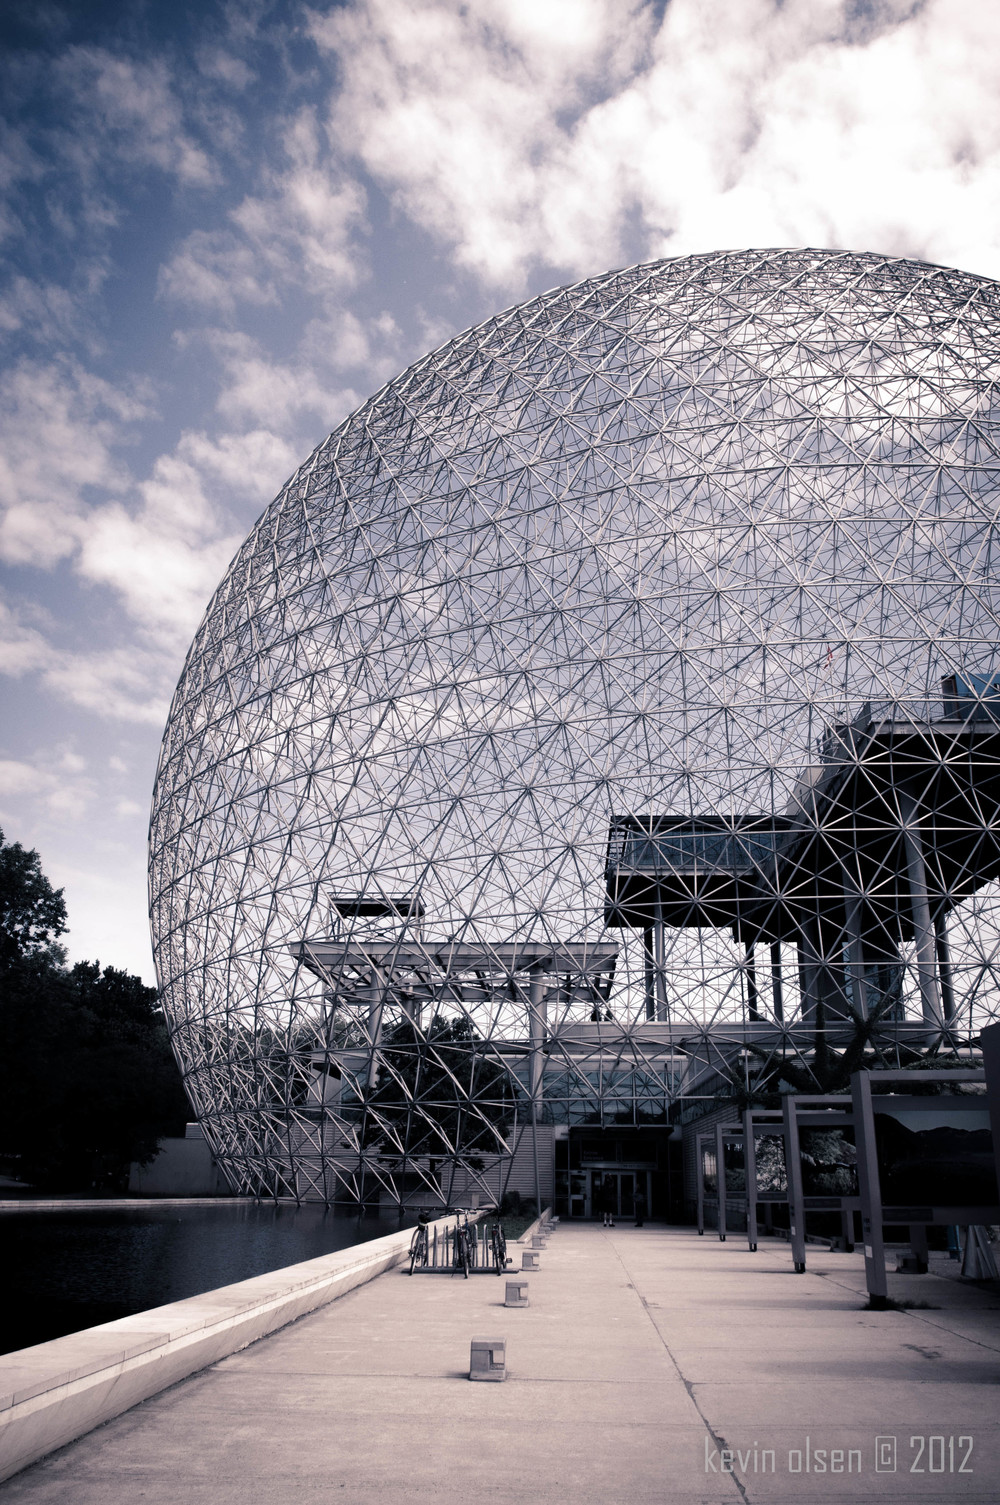 Buckminster Fuller's geodesic dome at the Montreal Olympic Island, 2011.